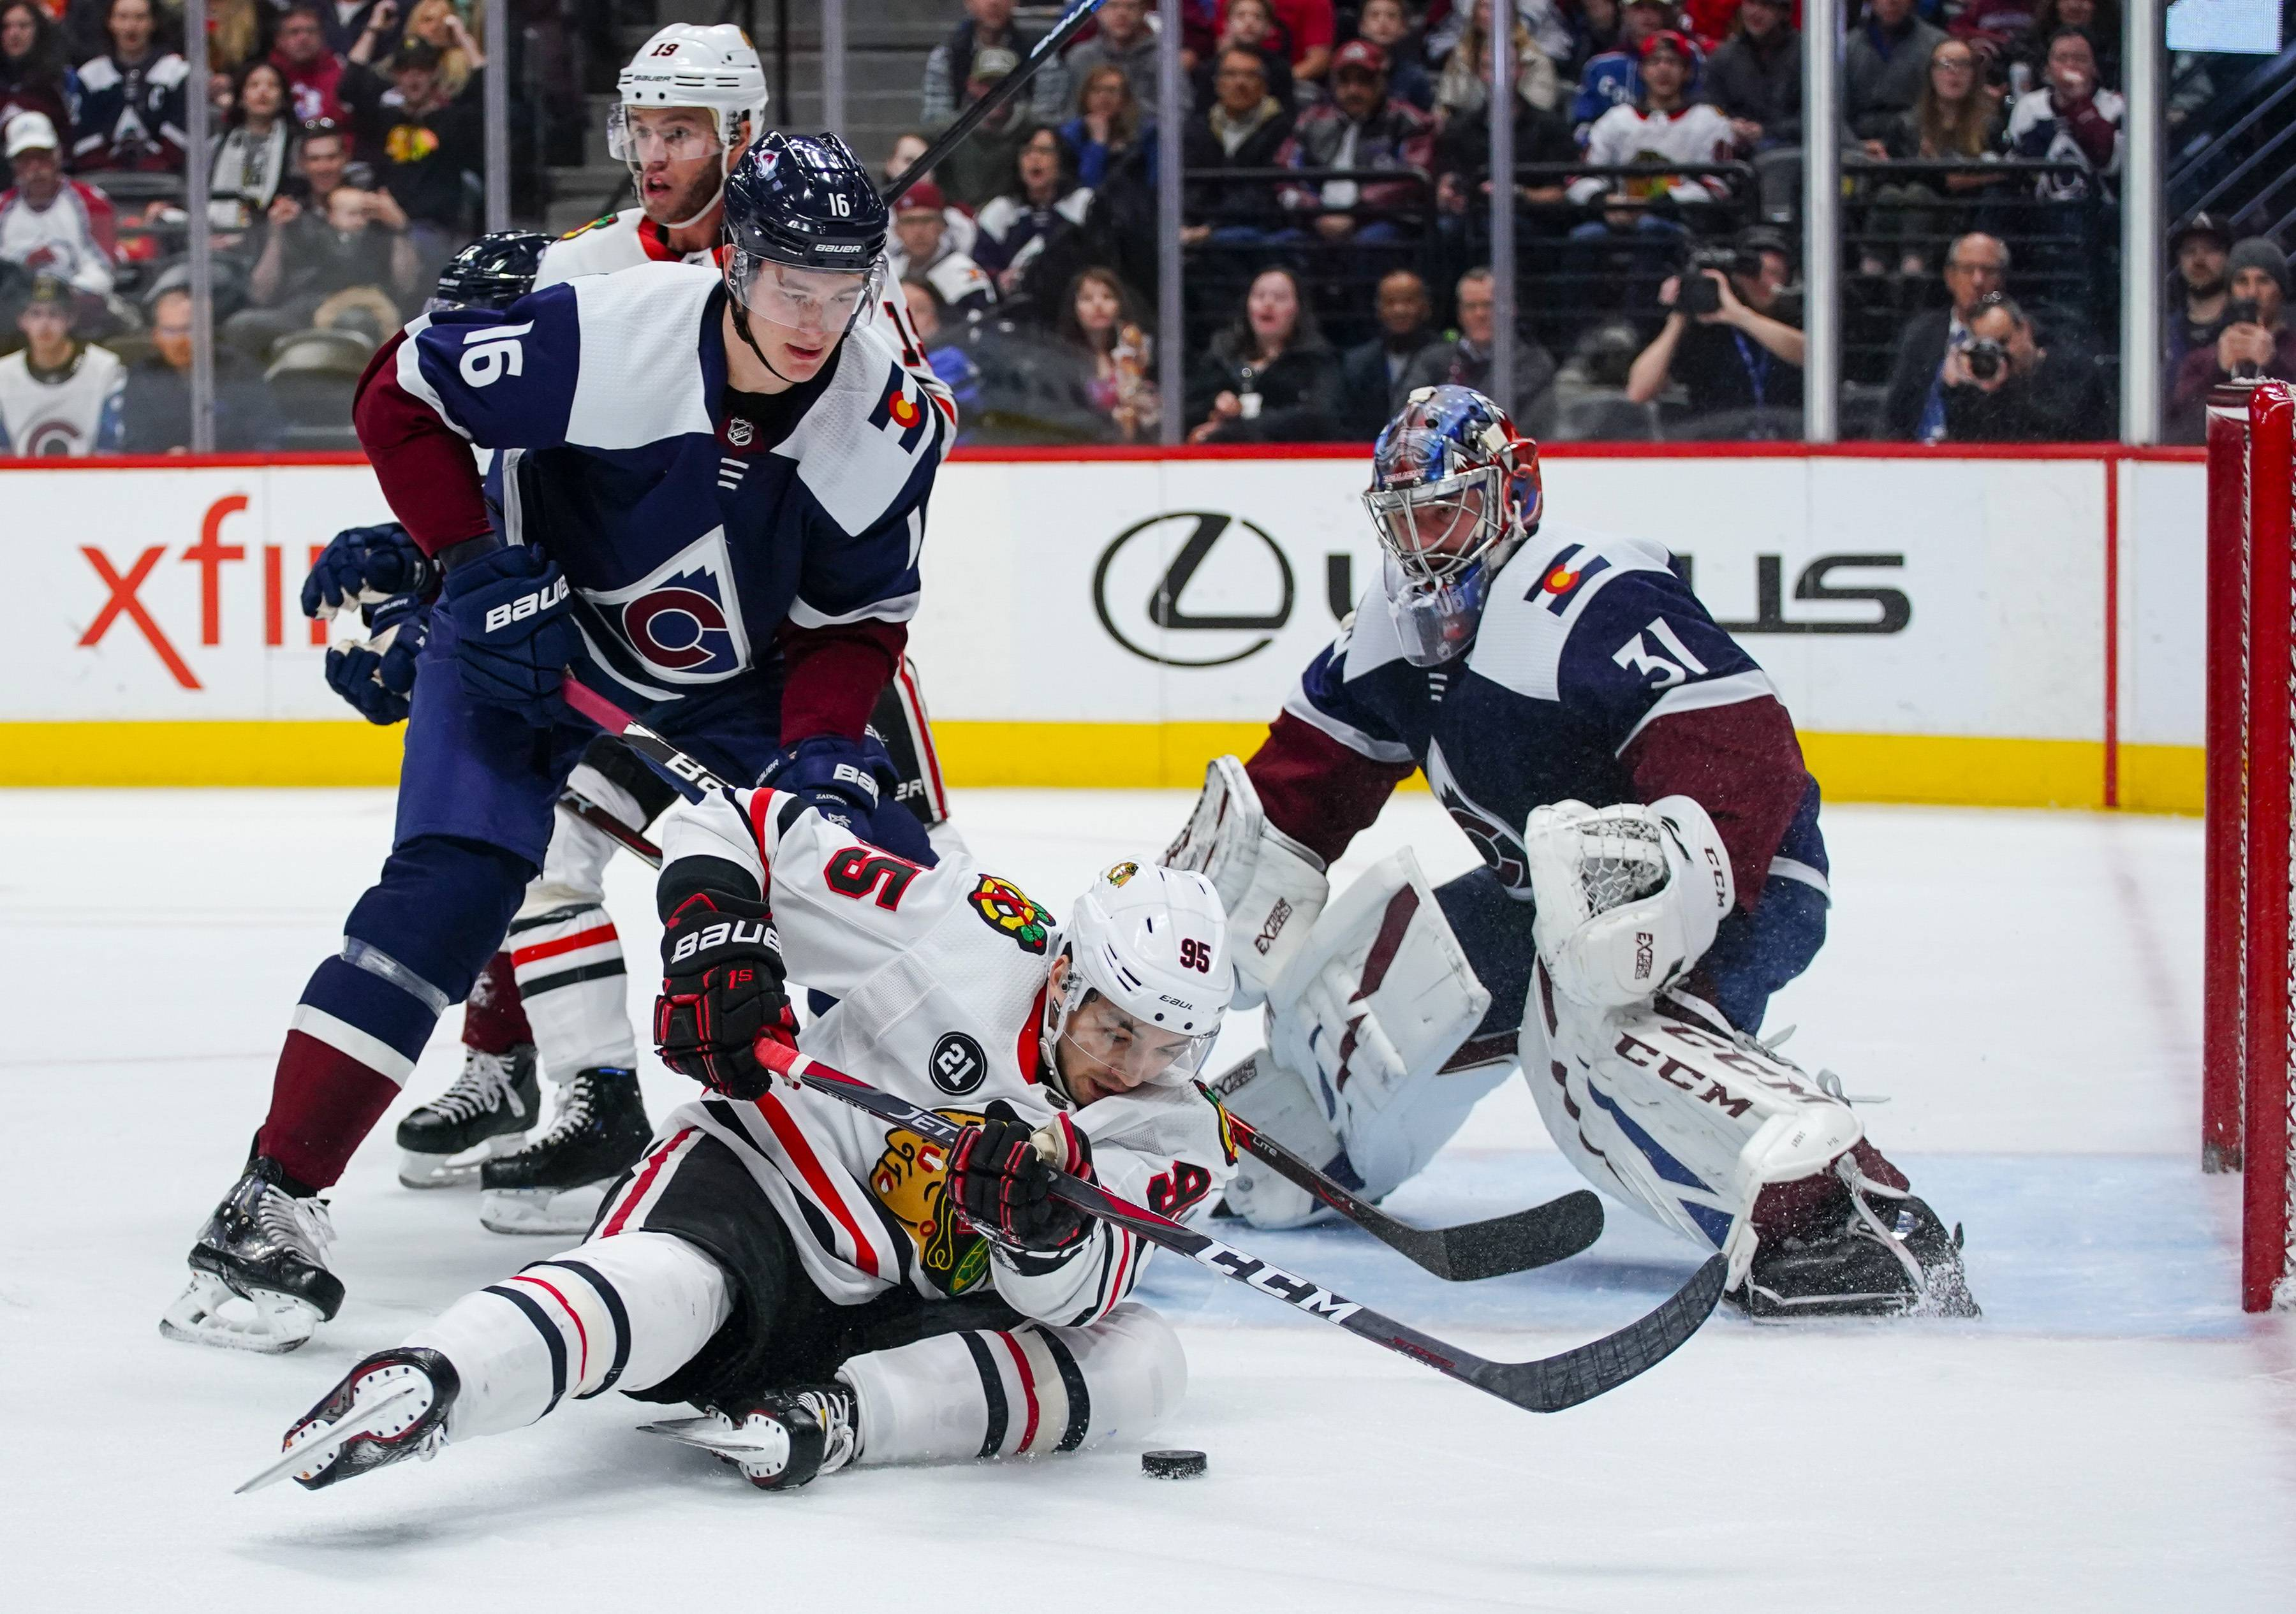 Chicago Blackhawks right wing Dylan Sikura (95) slides on the ice to control the puck against Colorado Avalanche defenseman Nikita Zadorov (16) and Philipp Grubauer (31) during the first period Saturday in Denver.